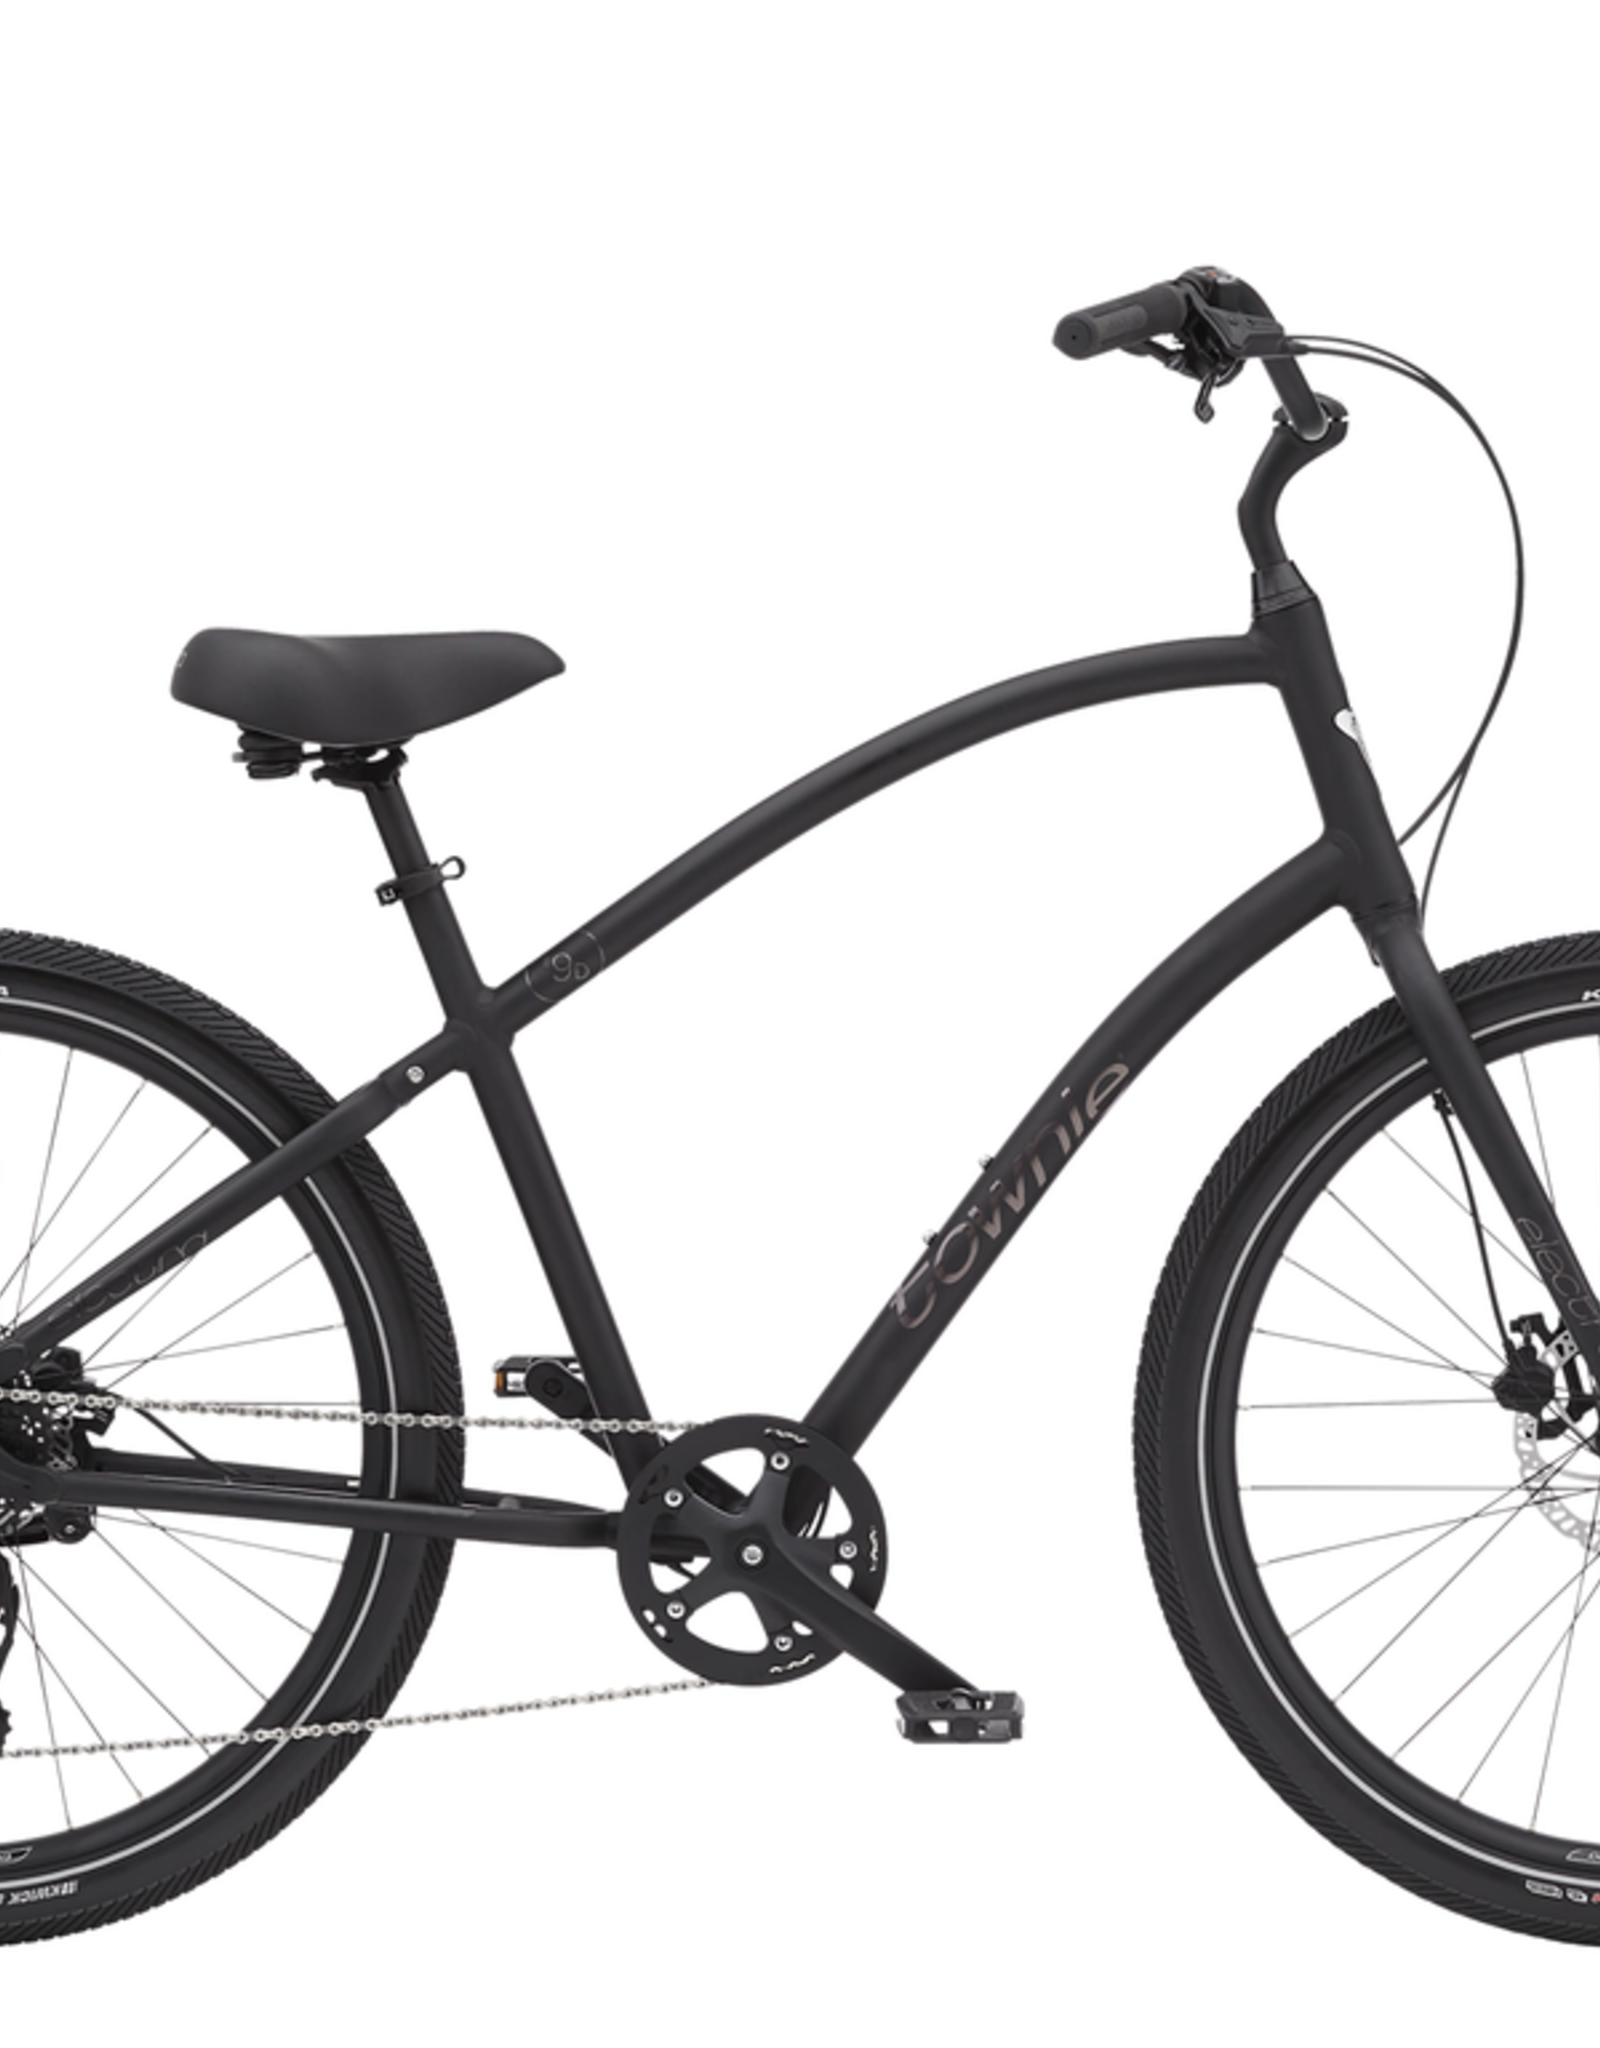 Townie Electra Townie Path 9D, Men's